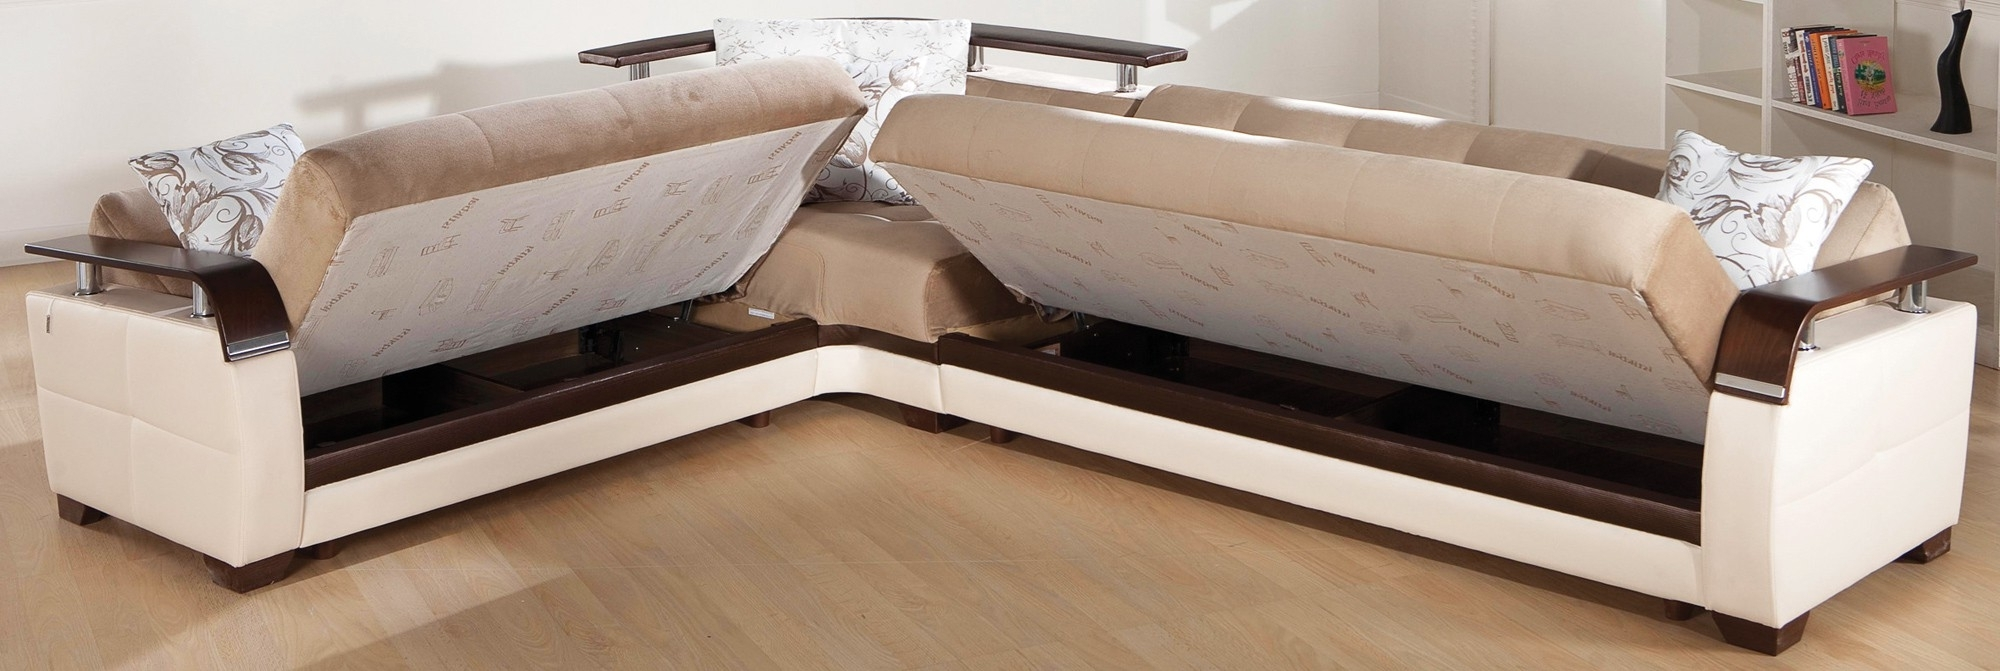 Sofa Sleeper Sectionals – Interior Design Pertaining To Current Sectional Sofas With Sleeper (View 14 of 20)